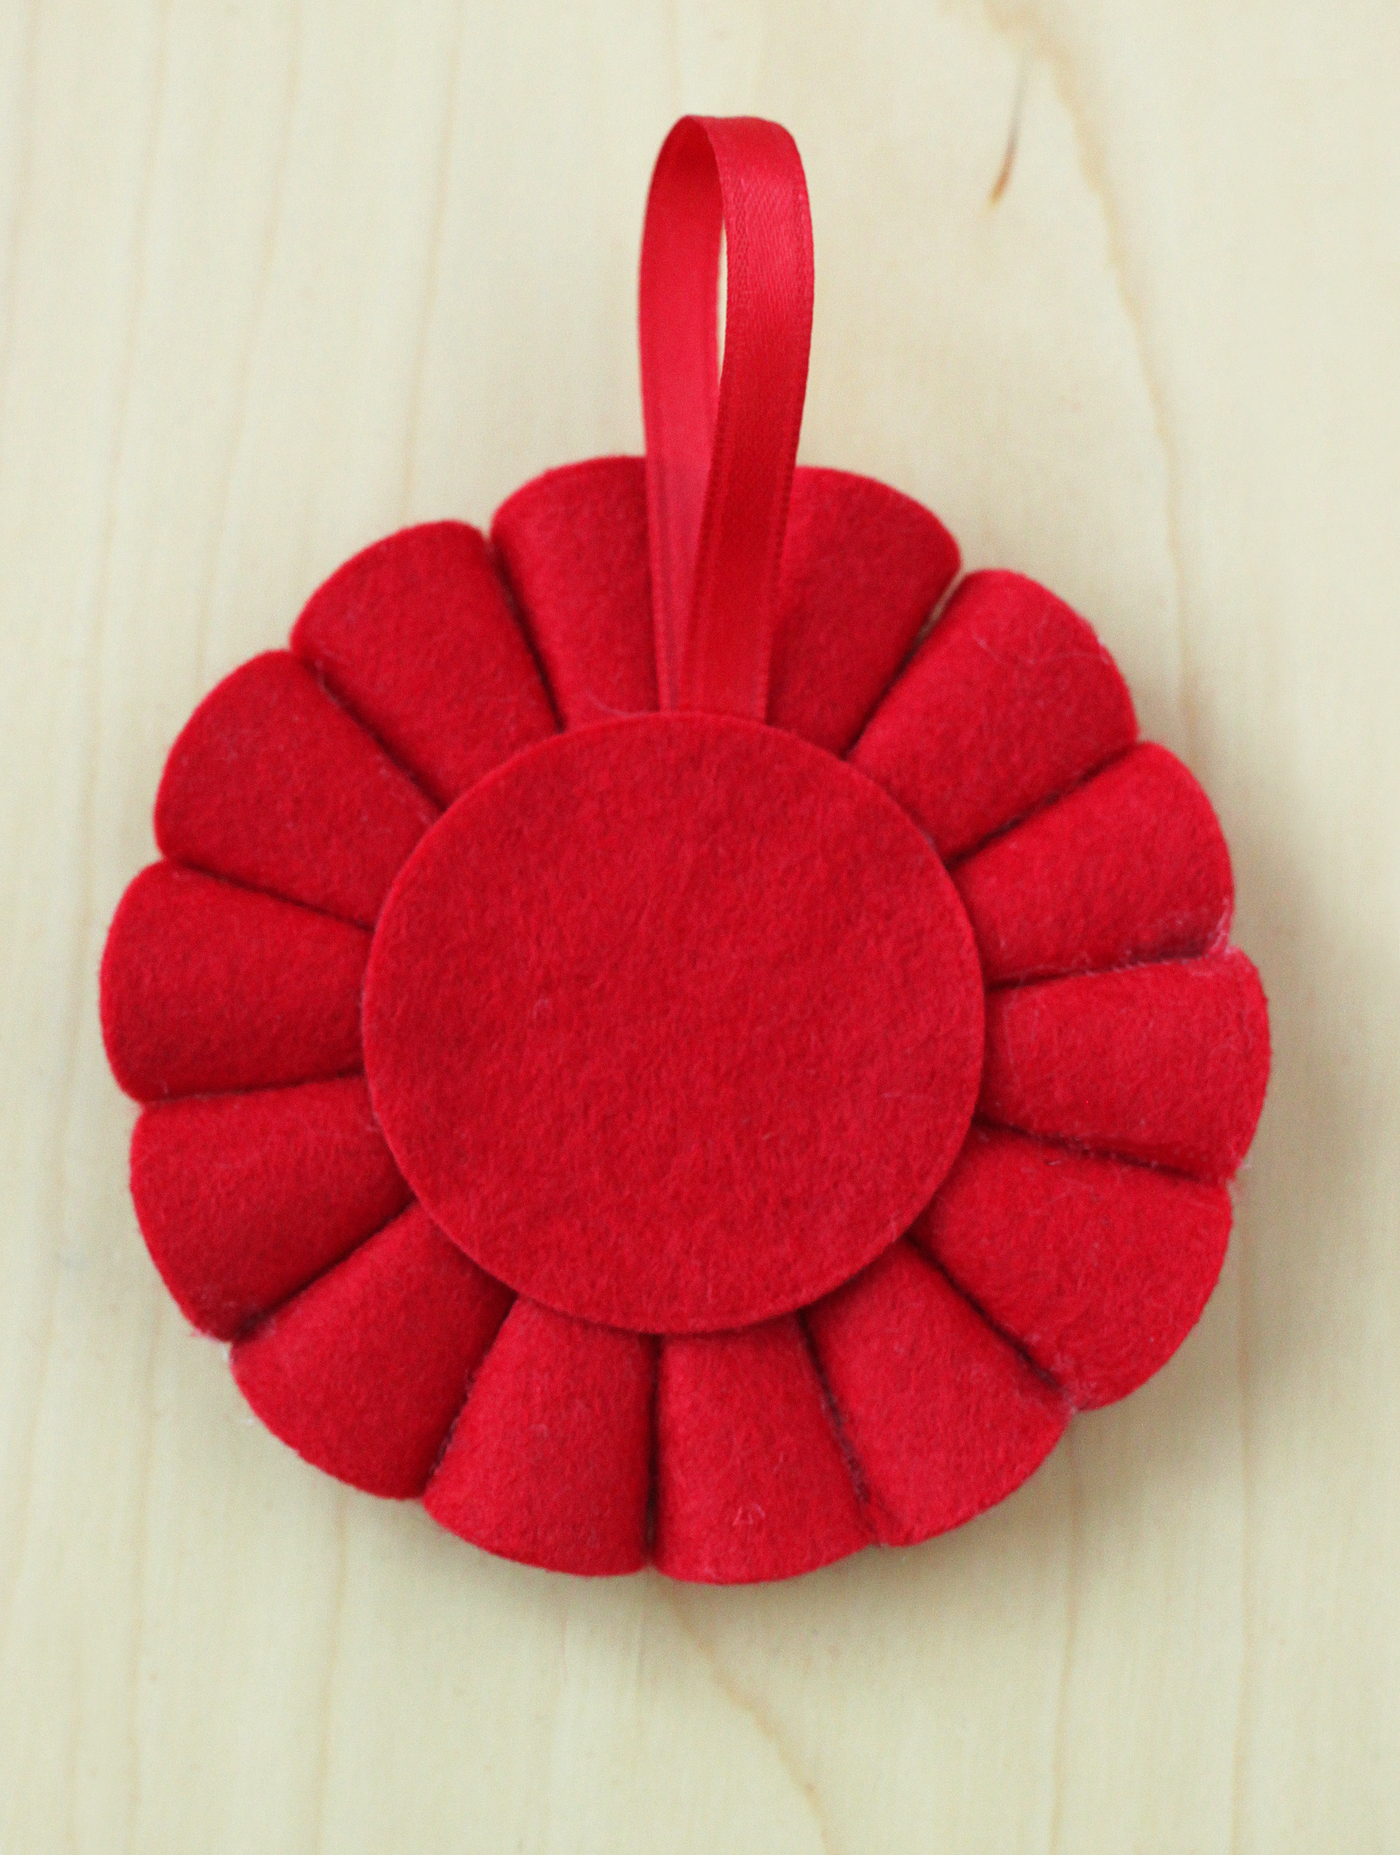 felt-poinsettia-ornament-09